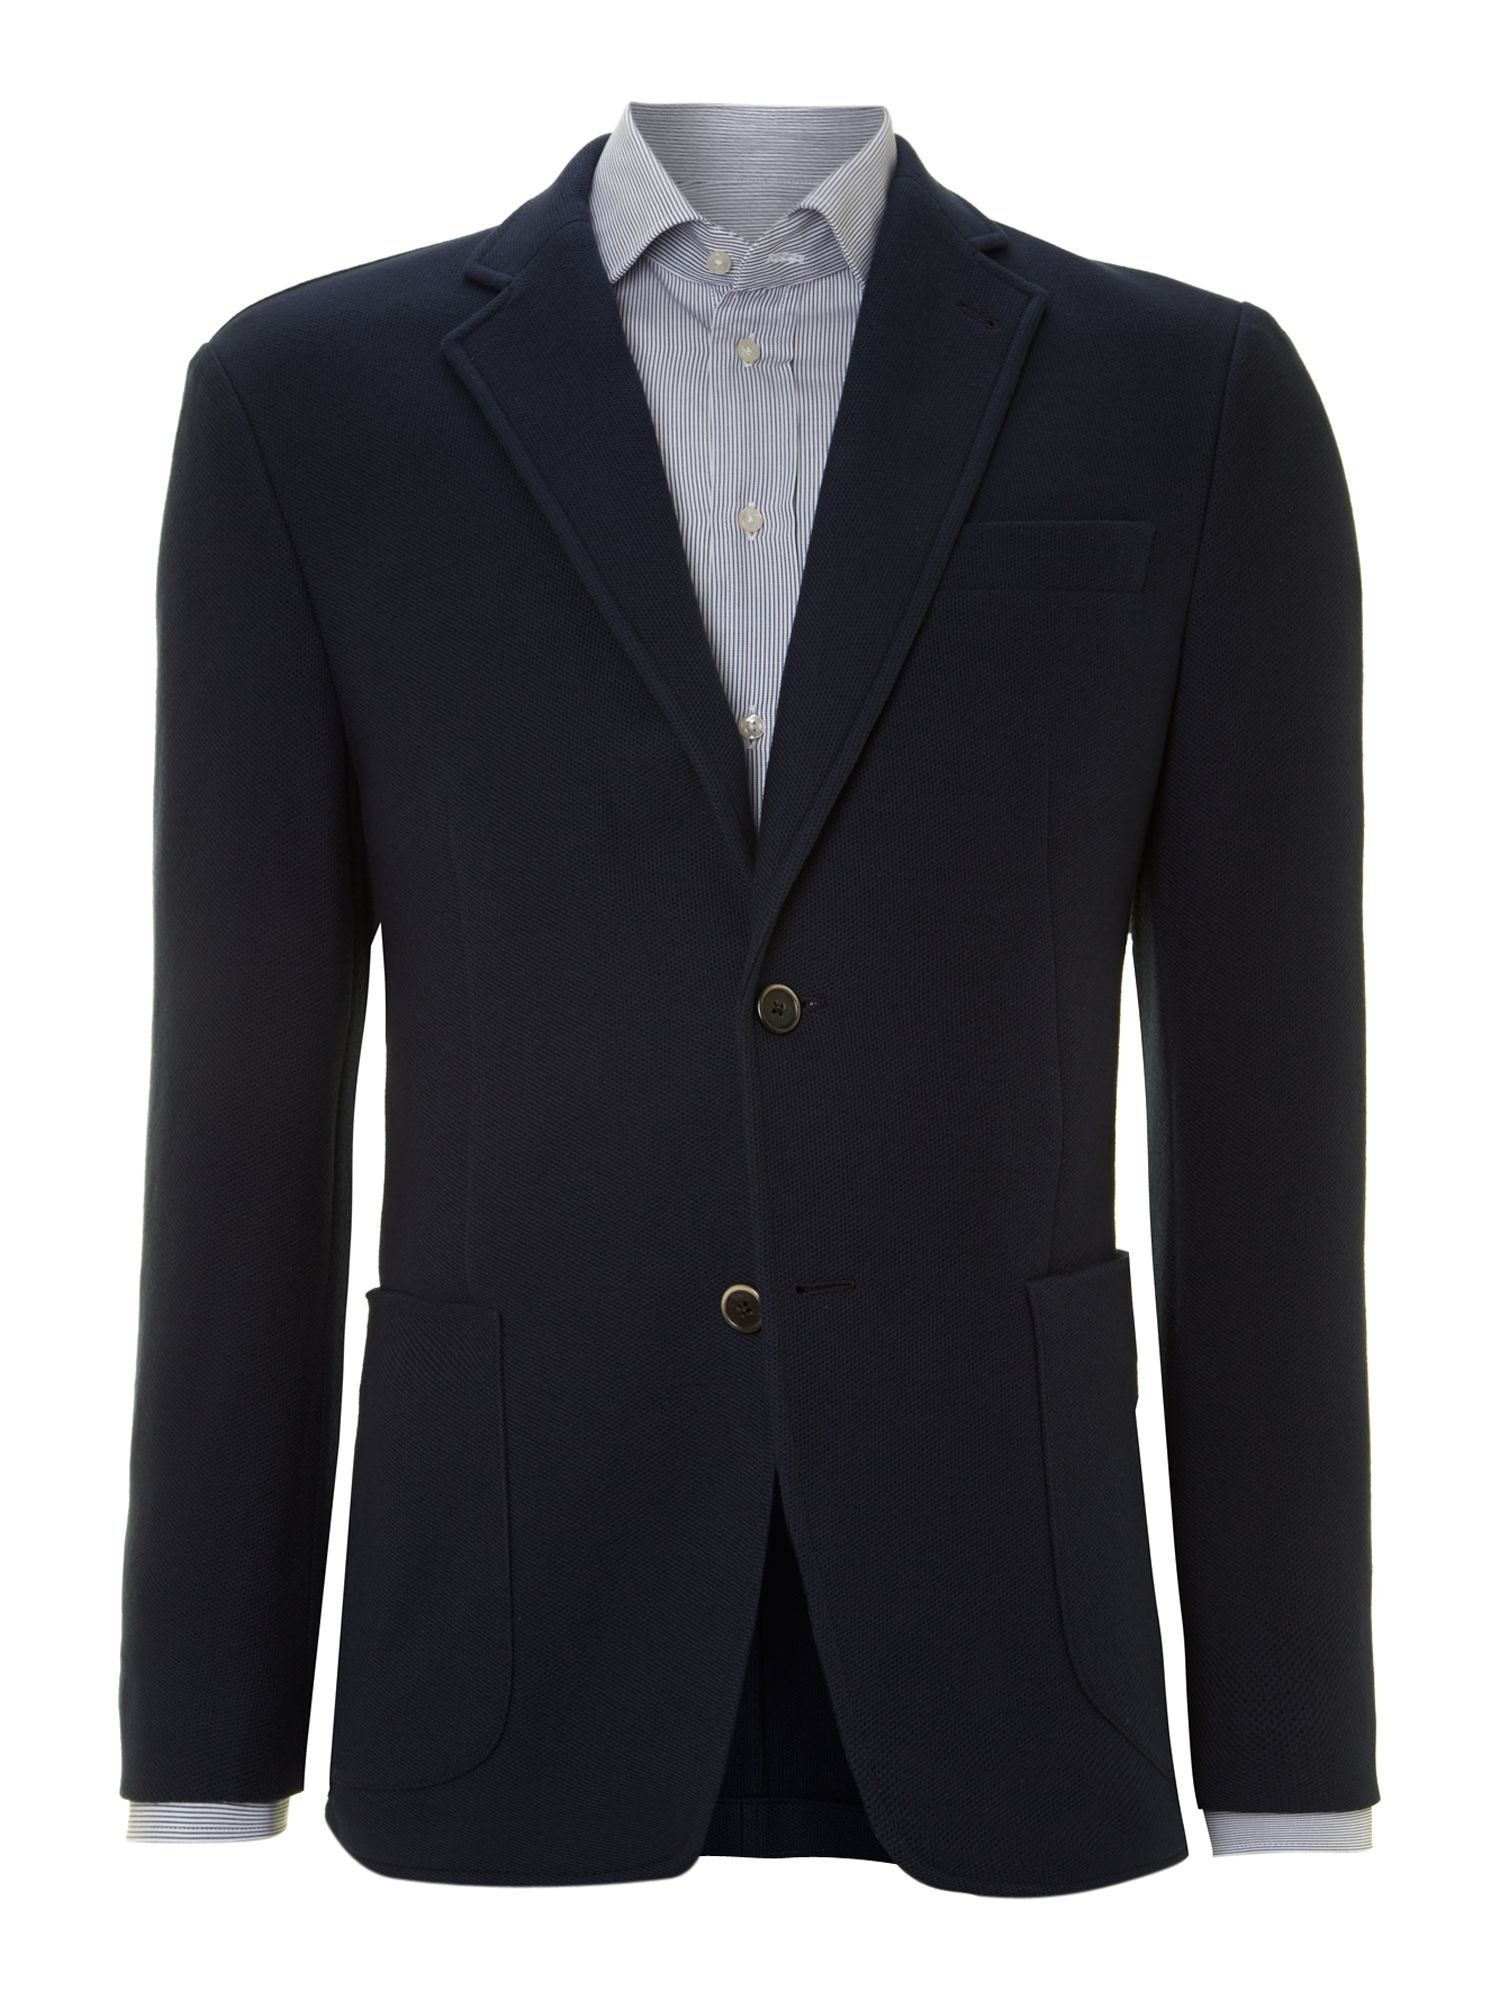 Honeycomb piquet blazer